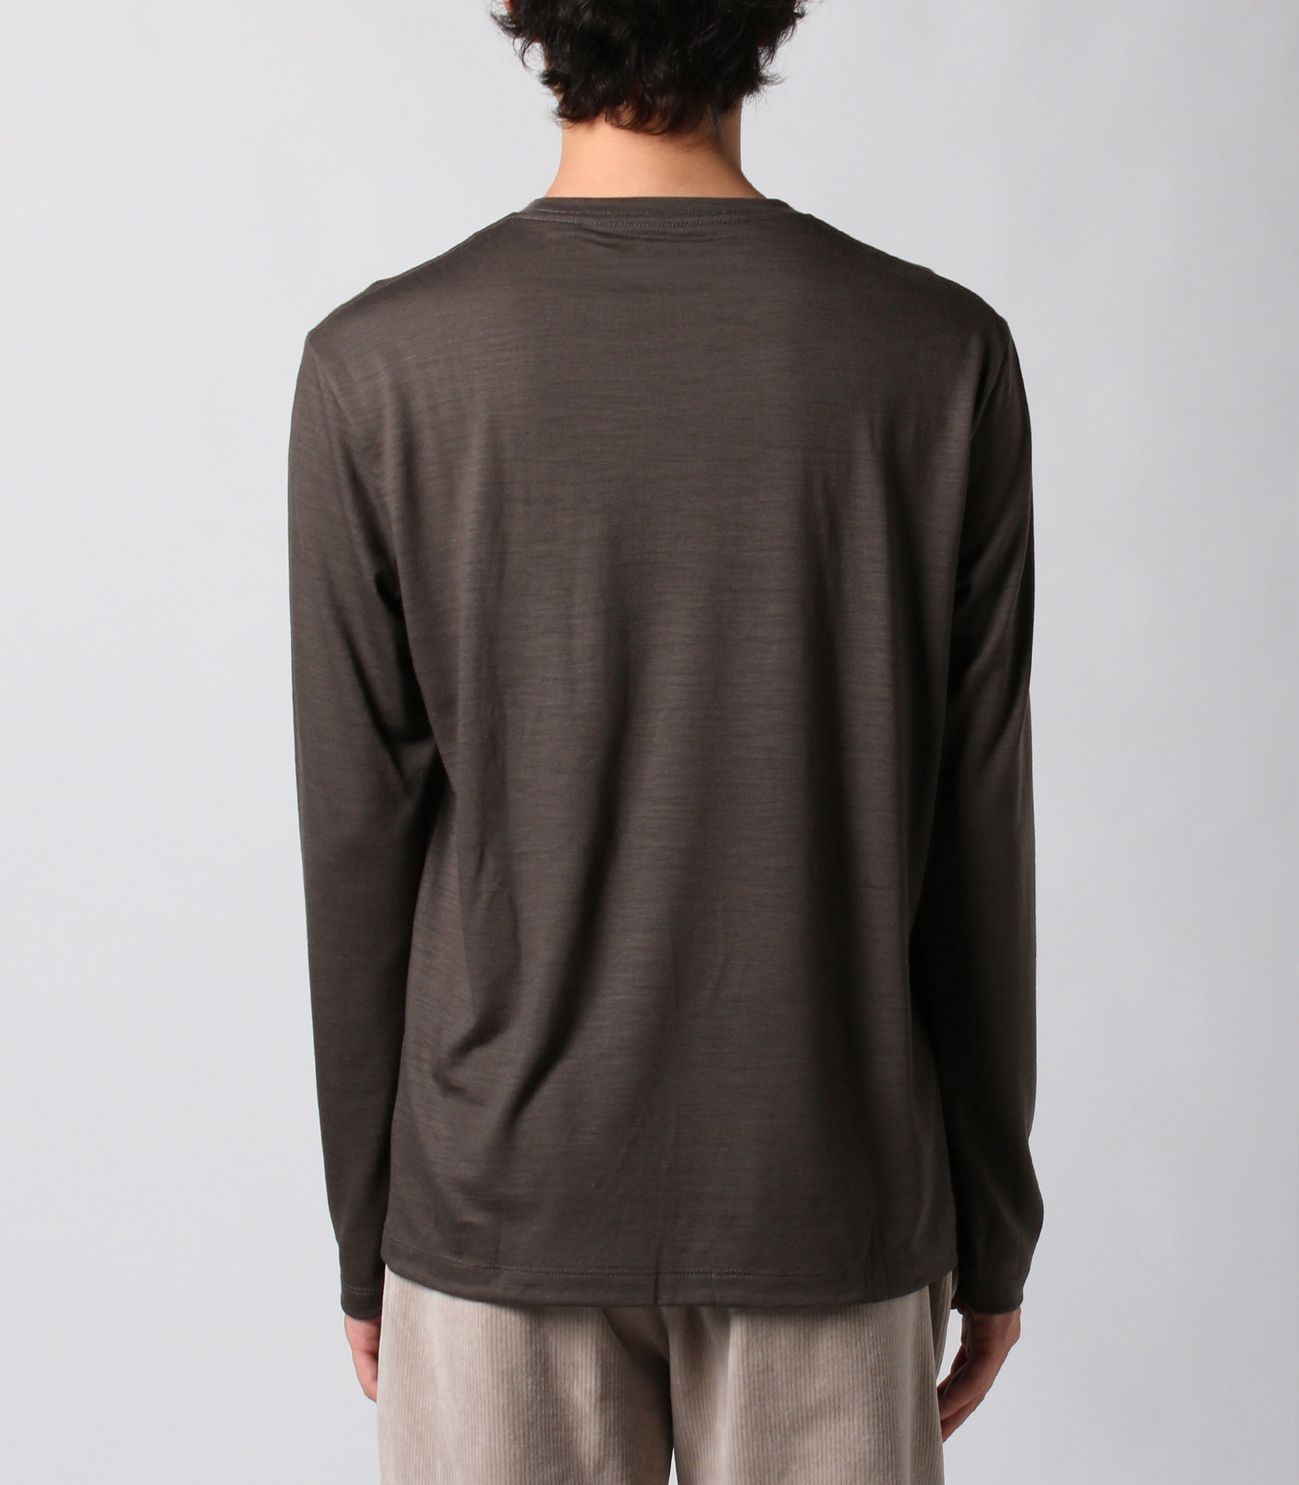 Washable silky dry jersey crewneck 詳細画像 brown 4